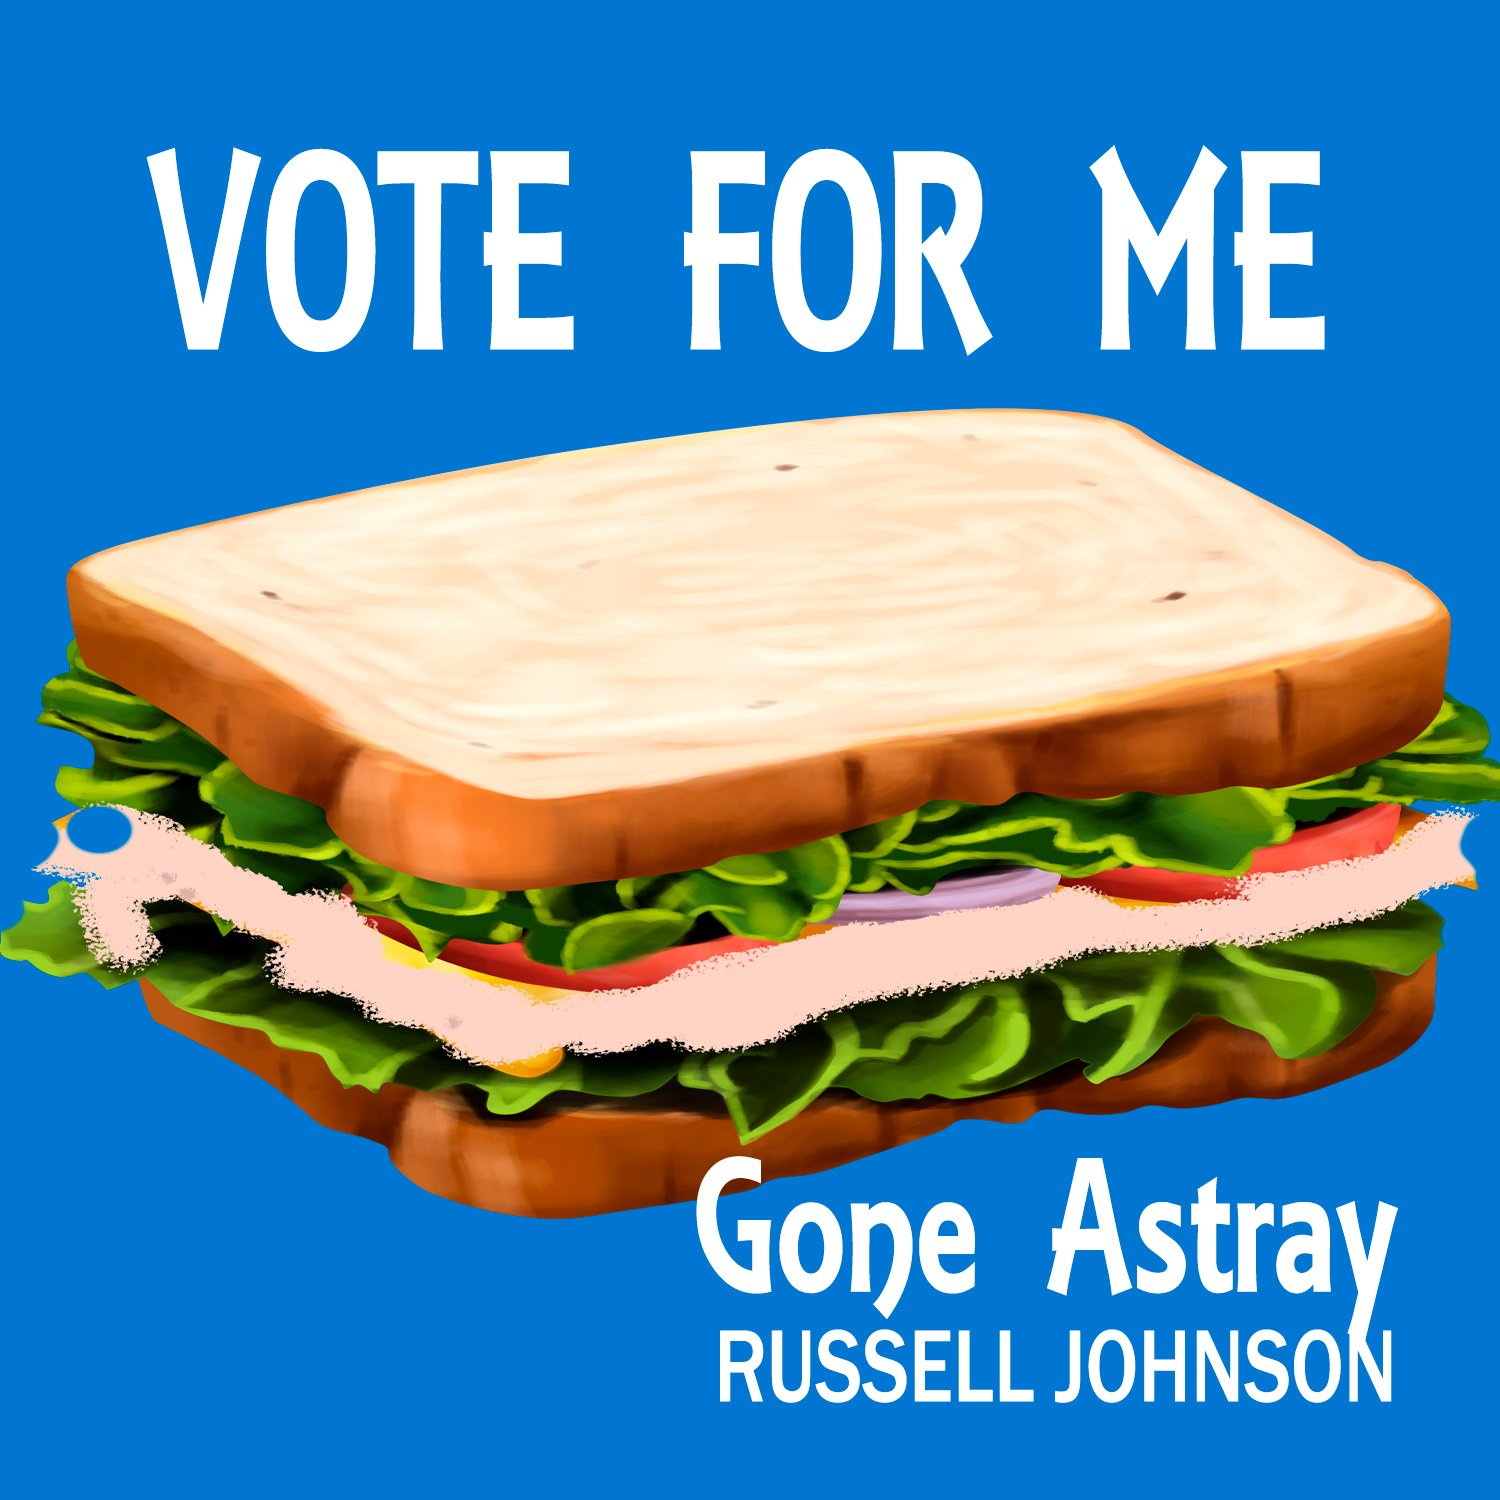 Vote For Me, I'm a Tunafish Sandwich -Episode of Russell Johnson - Gone Astray podcast